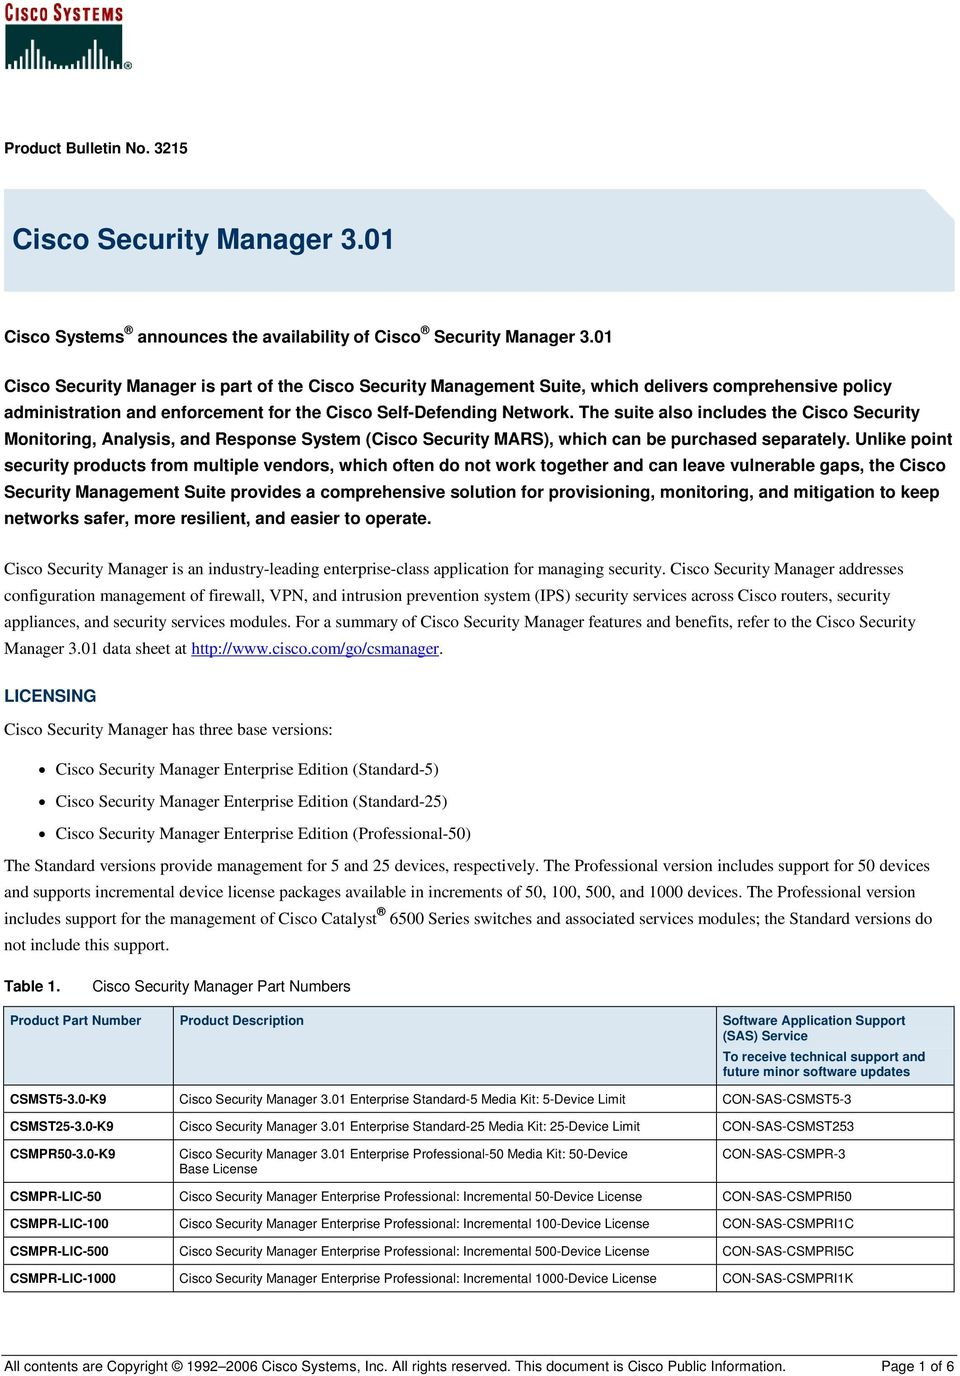 The suite also includes the Cisco Security Monitoring, Analysis, and Response System (Cisco Security MARS), which can be purchased separately.